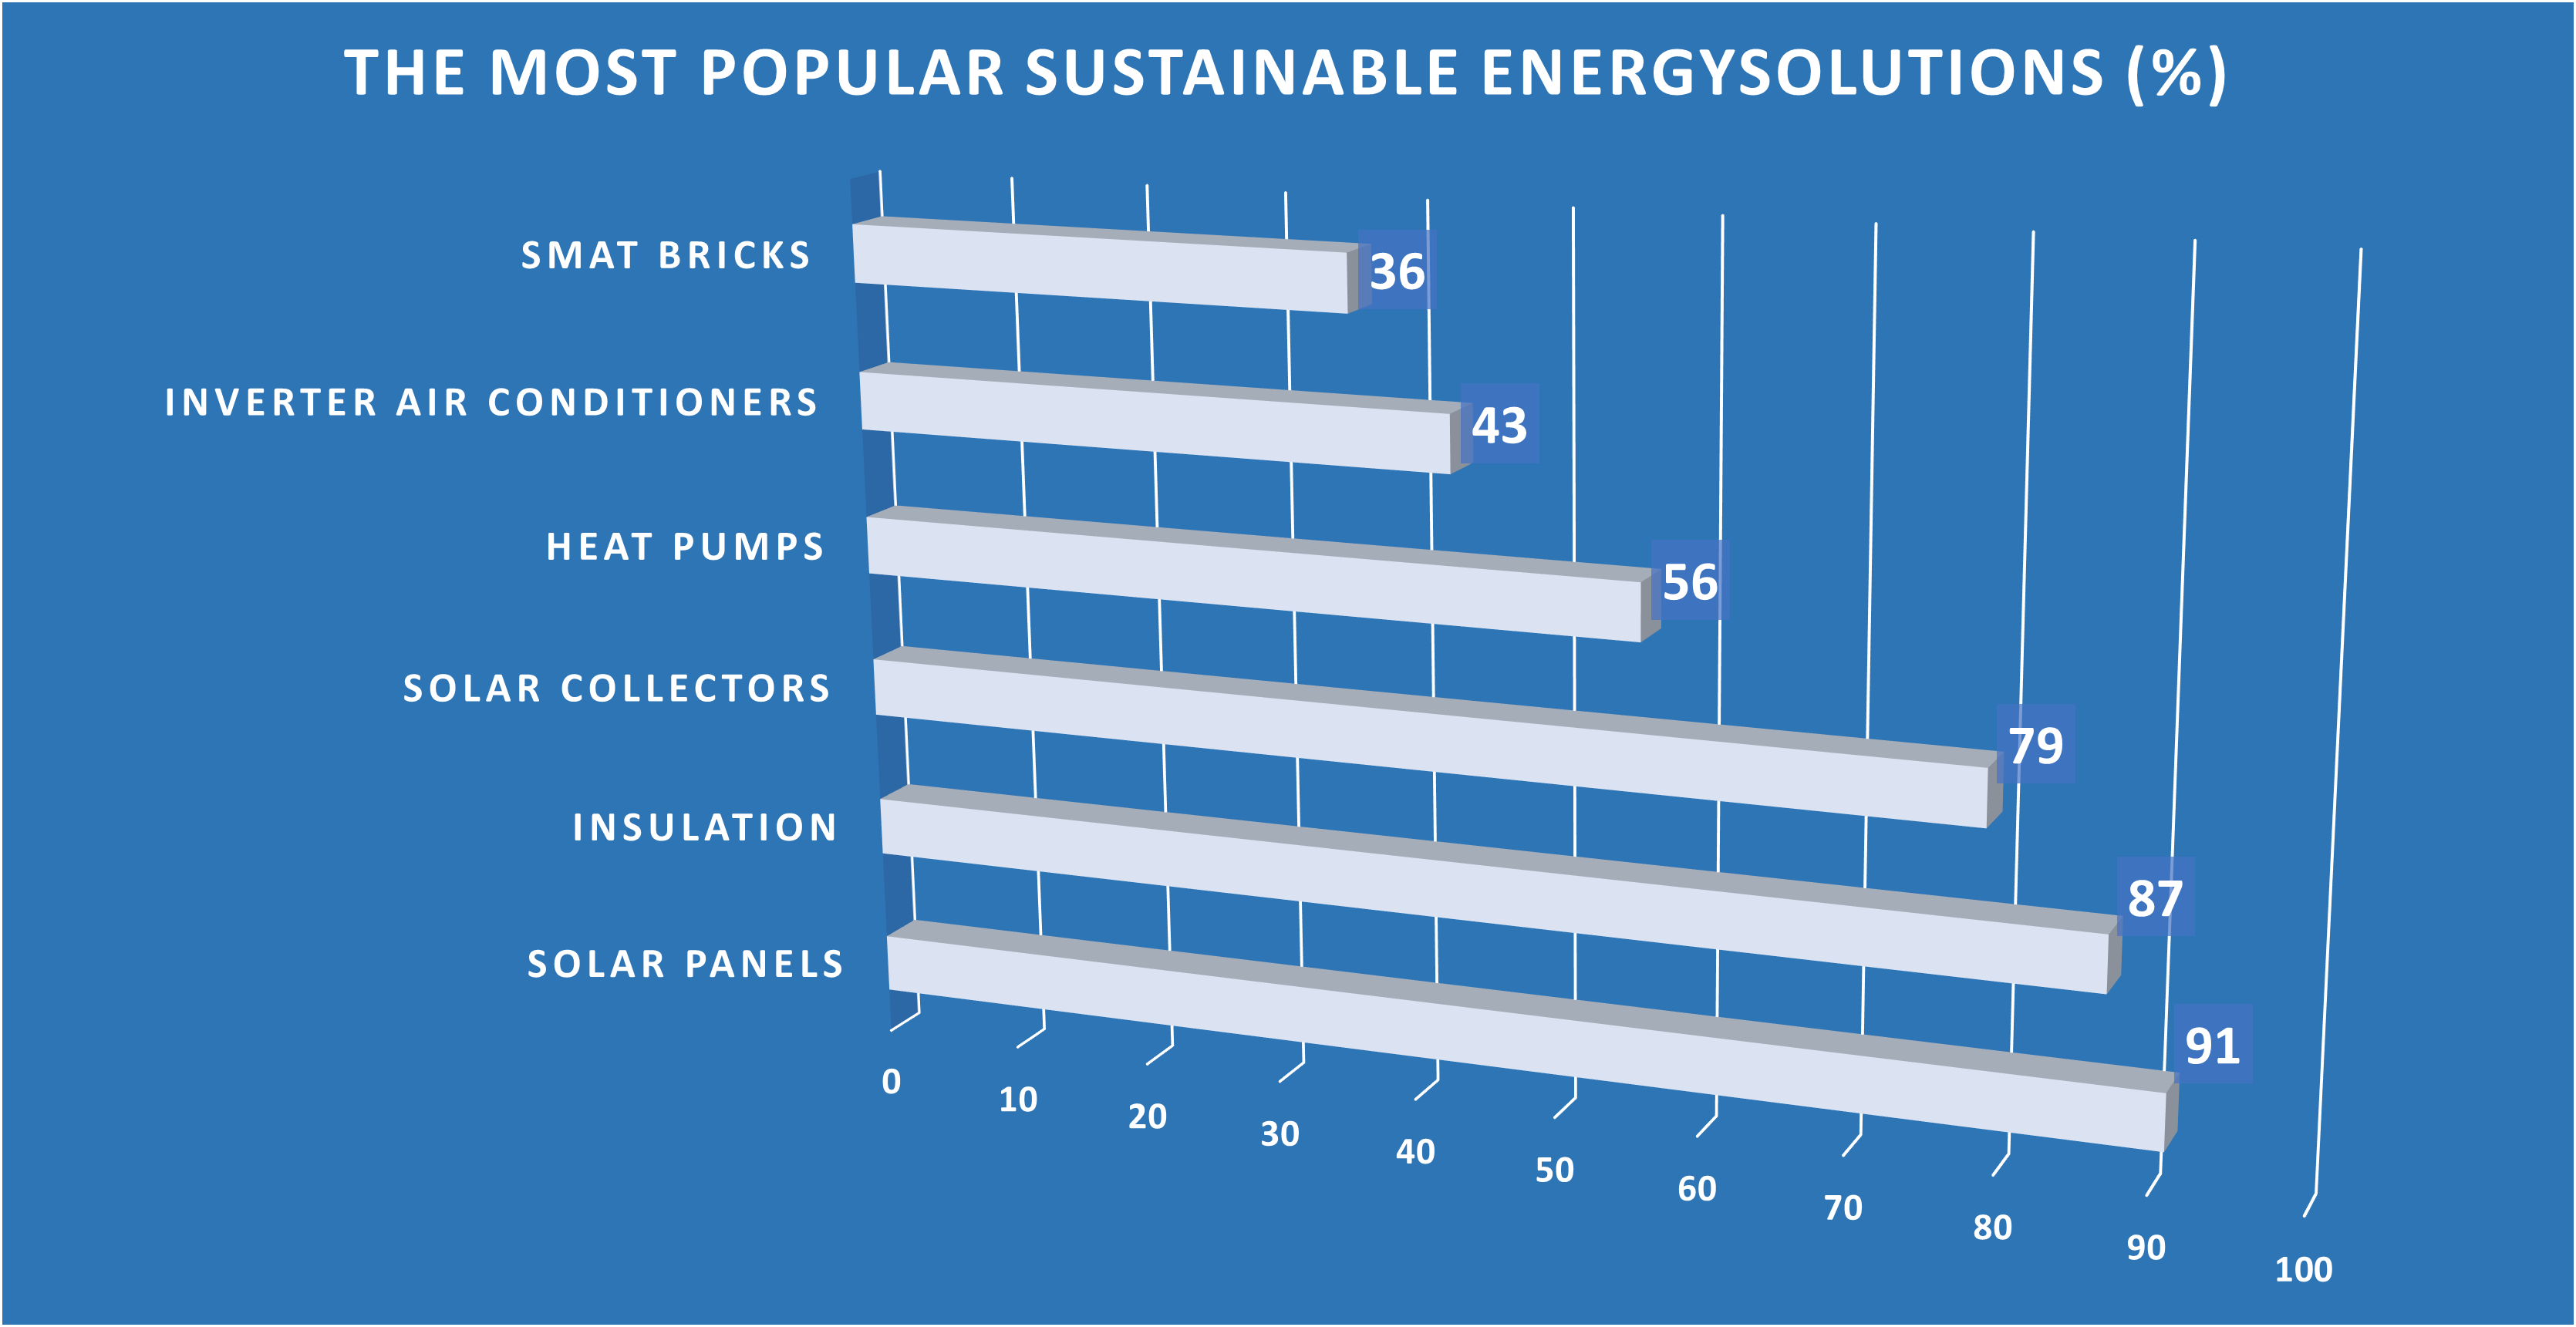 The most popular sustainable energy solutions